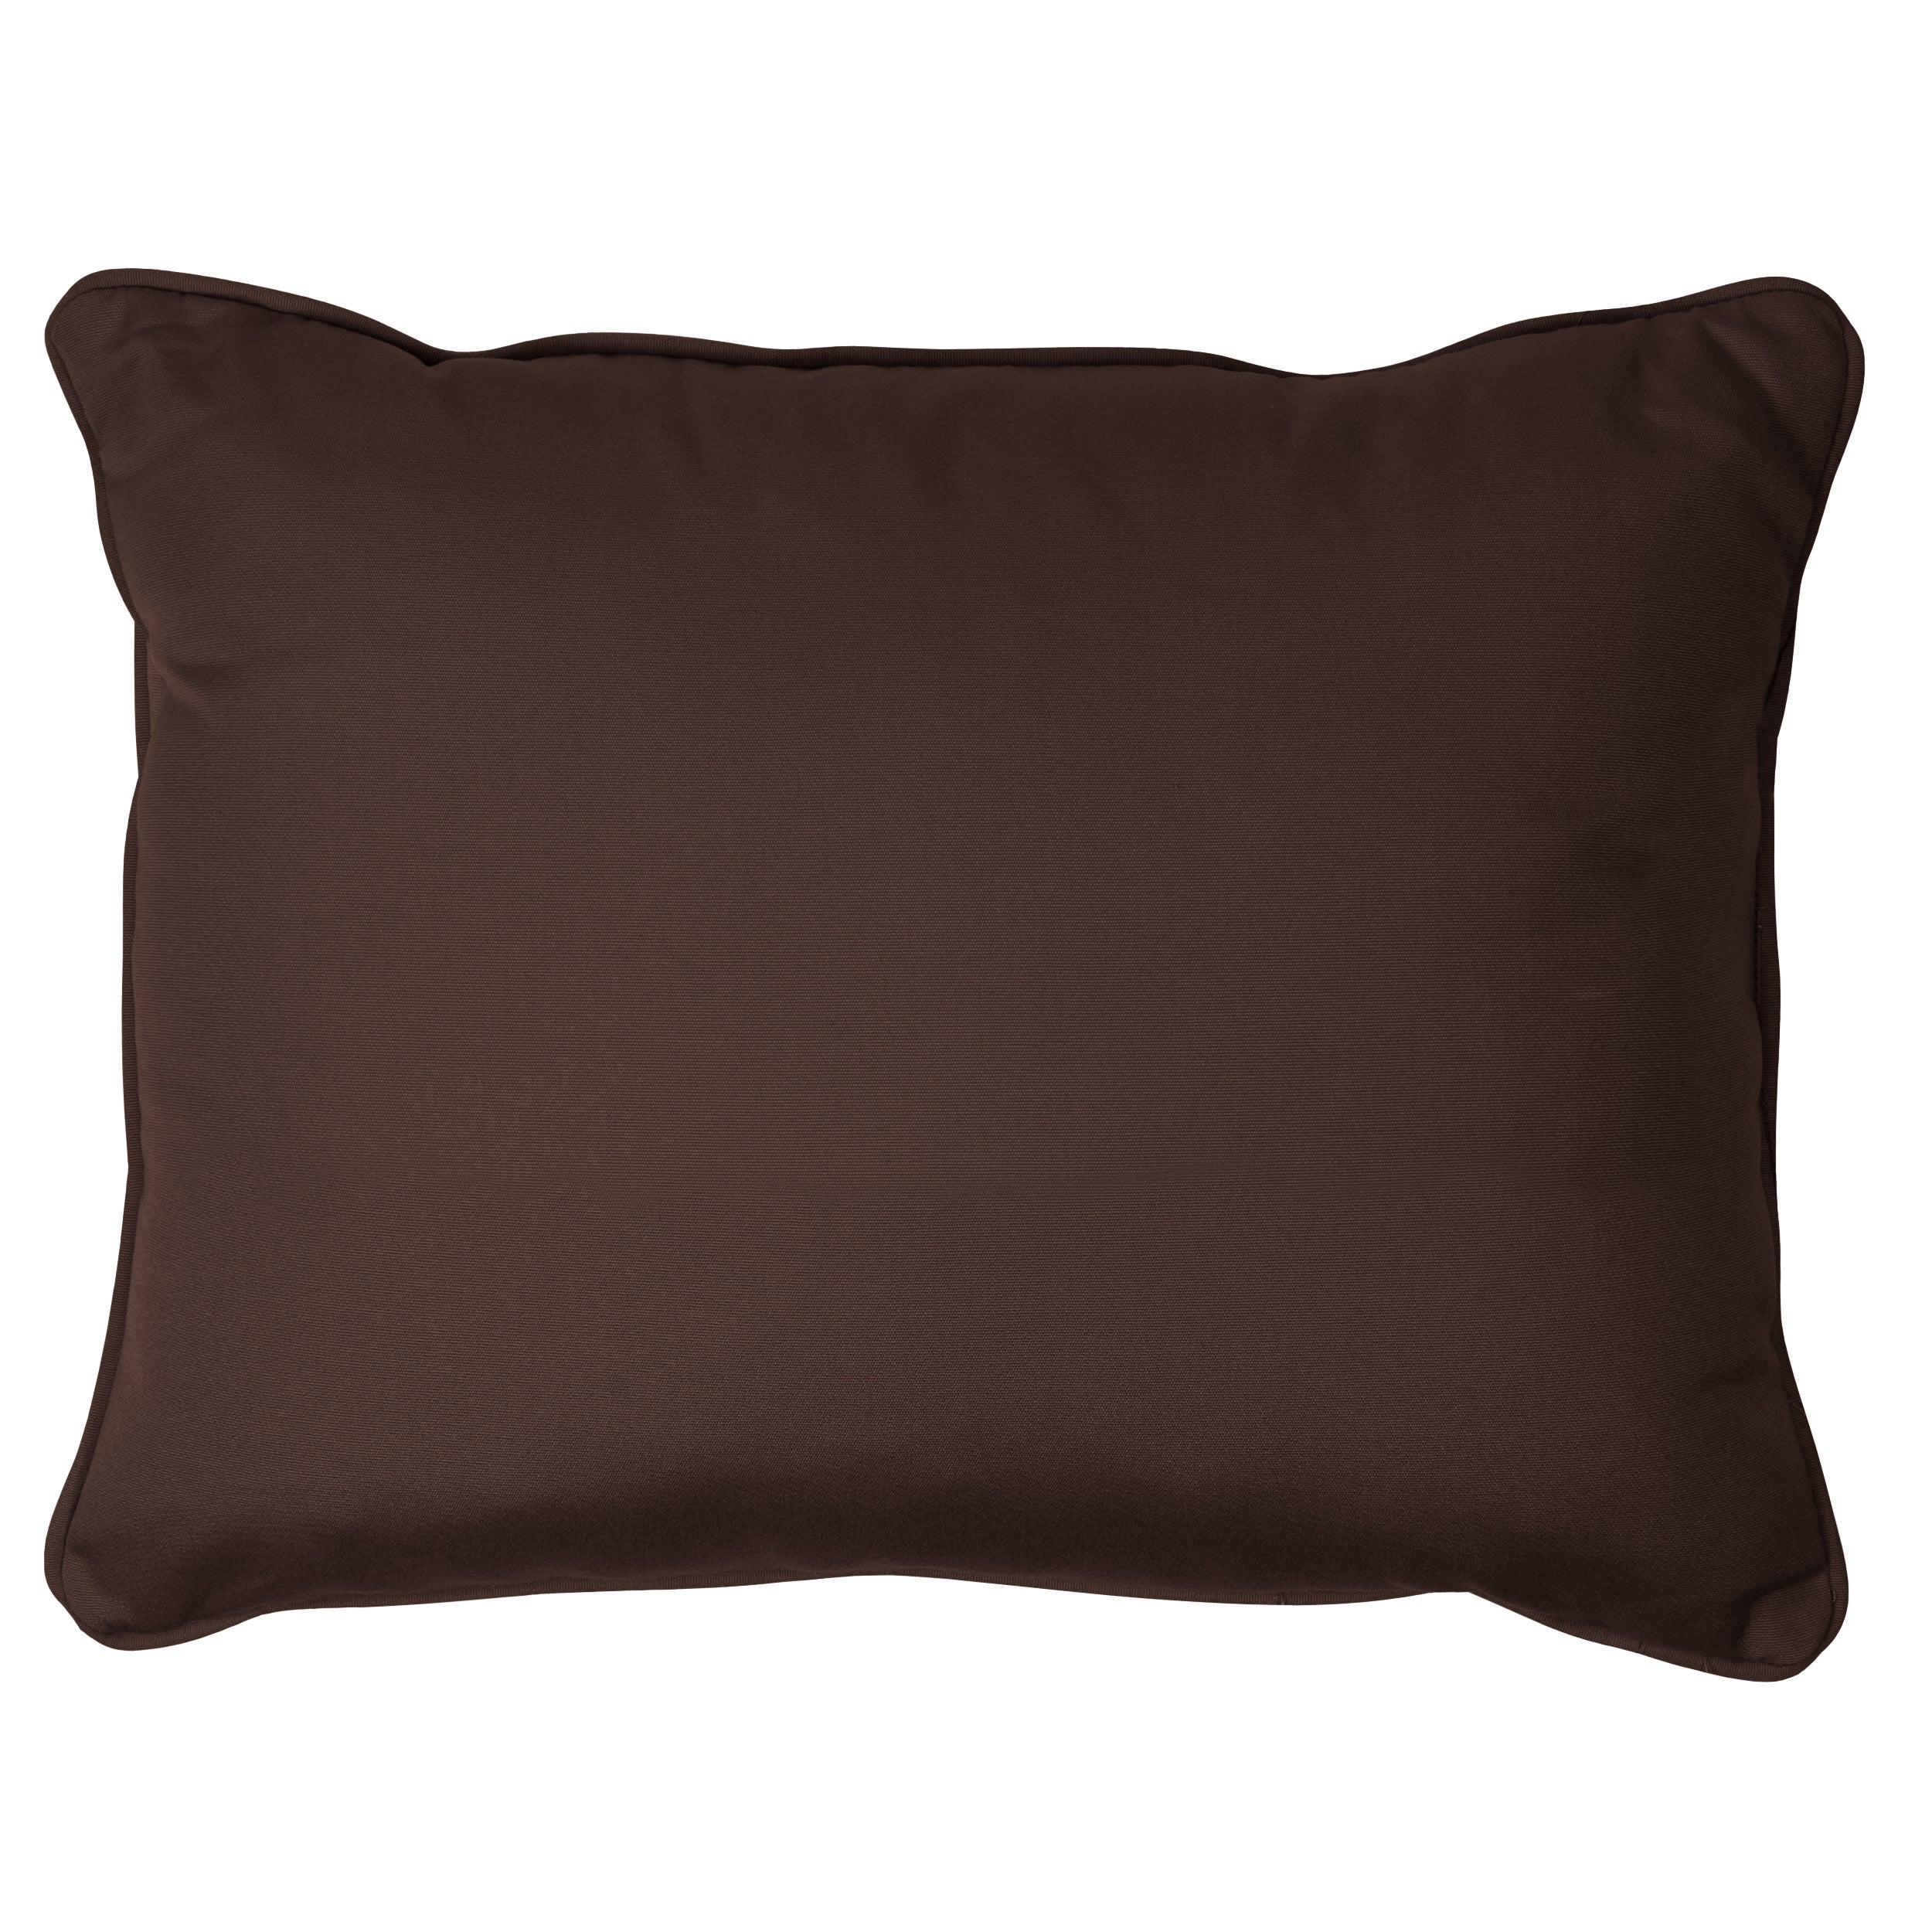 Overstock.com Bay Brown Corded 13 x 20 inch Indoor/ Outdoor Pillows with Sunbrella Fabric (Set of 2) at Sears.com